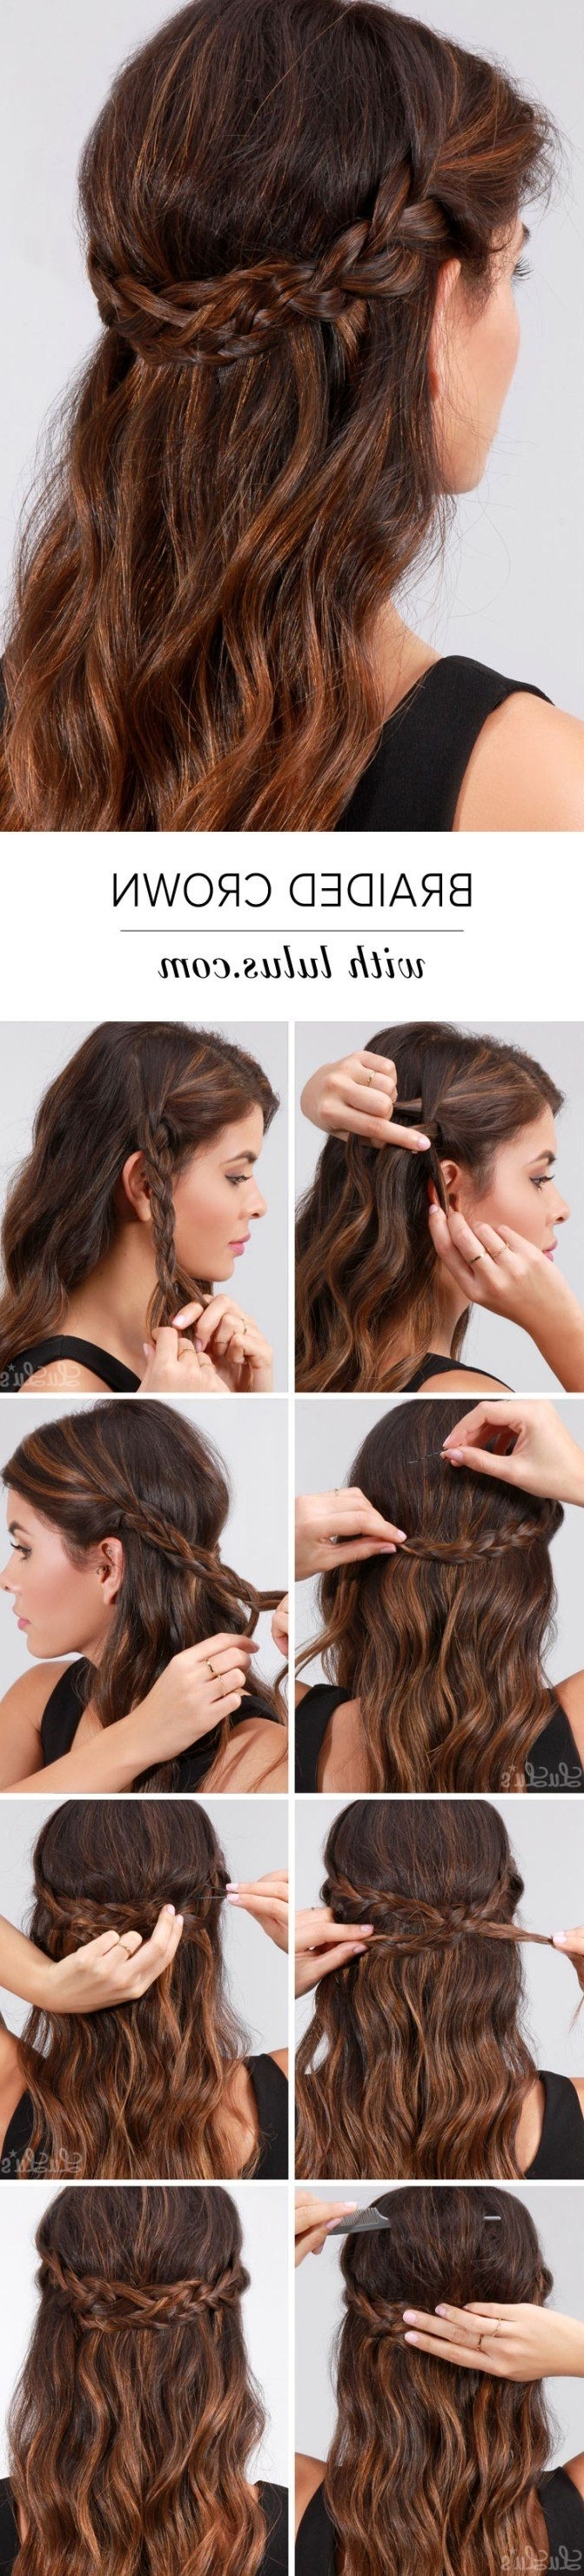 8 Easy Braids That Will Fix Any Bad Hair Day (Gallery 6 of 15)